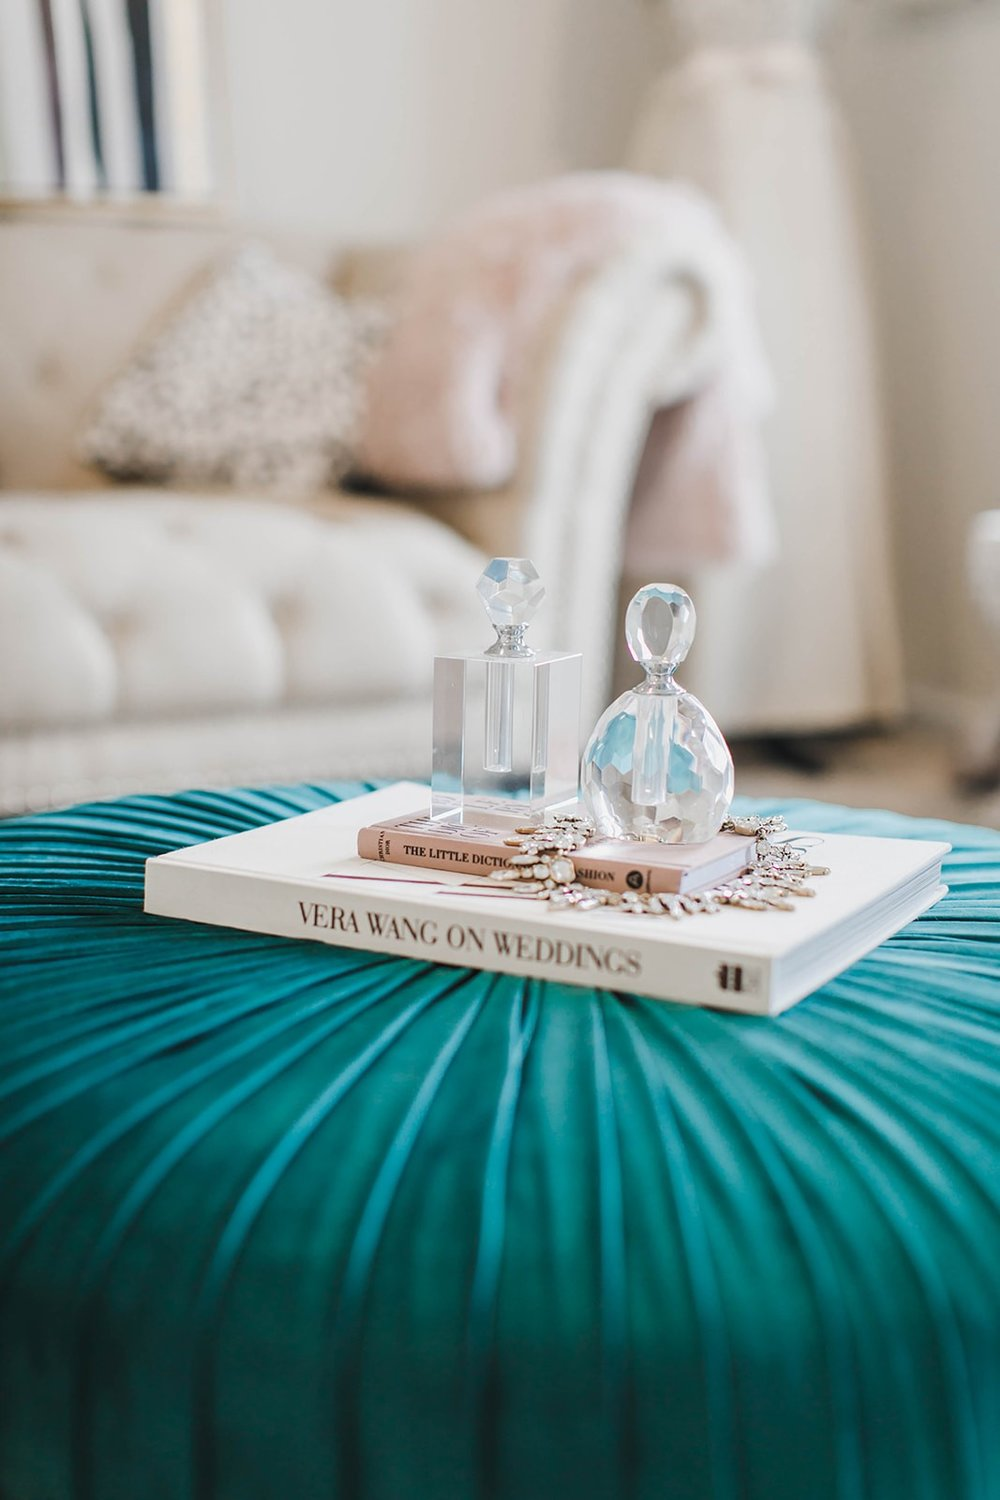 7 Coffee Table Books that Are Beyond Pretty -